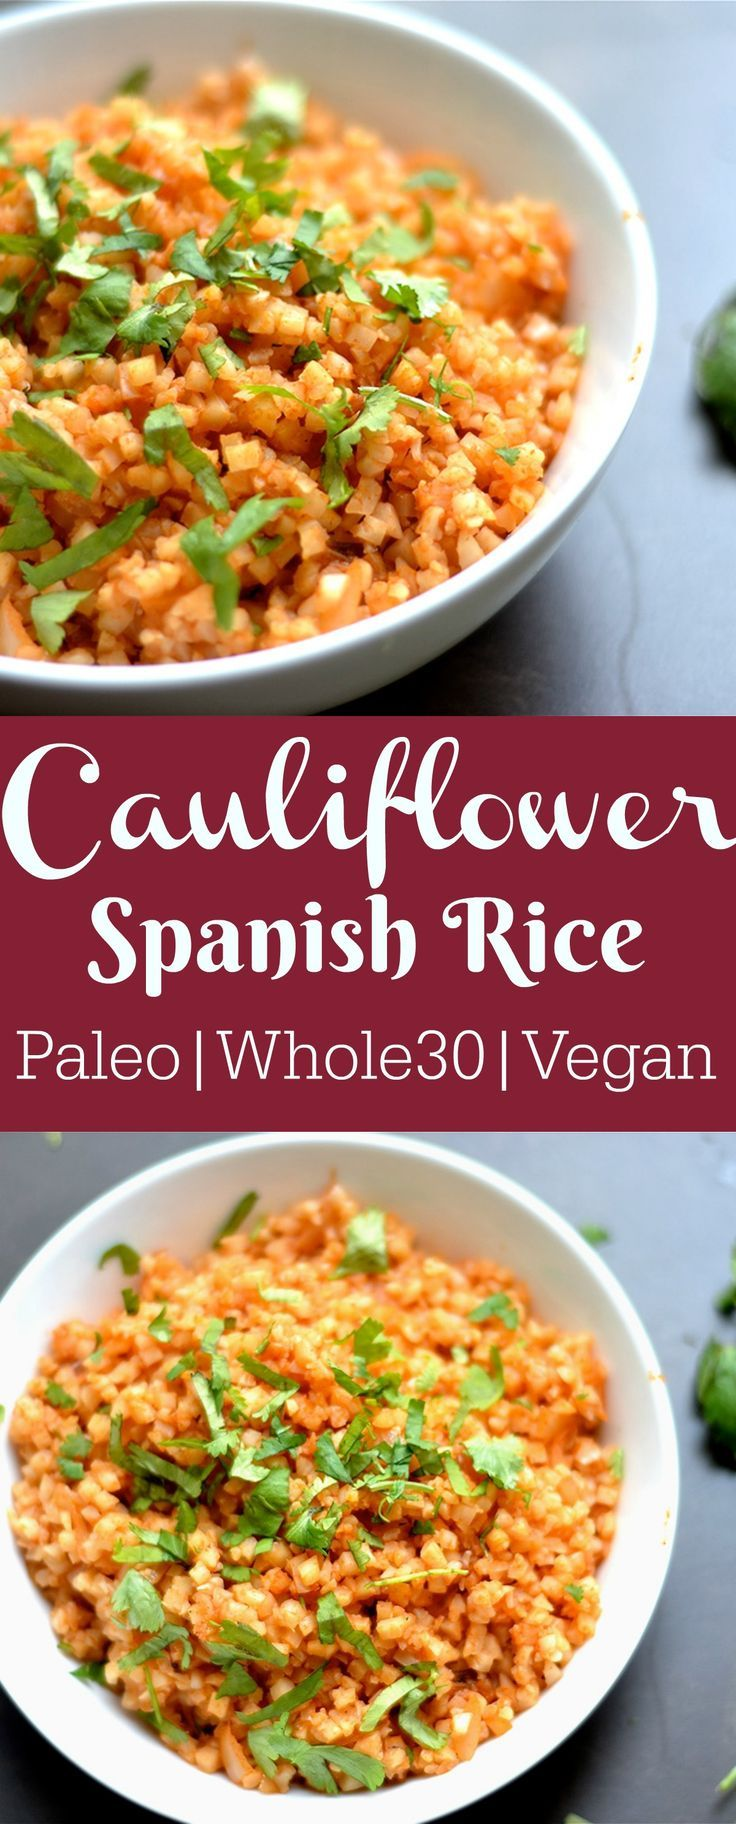 Cauliflower Spanish Rice